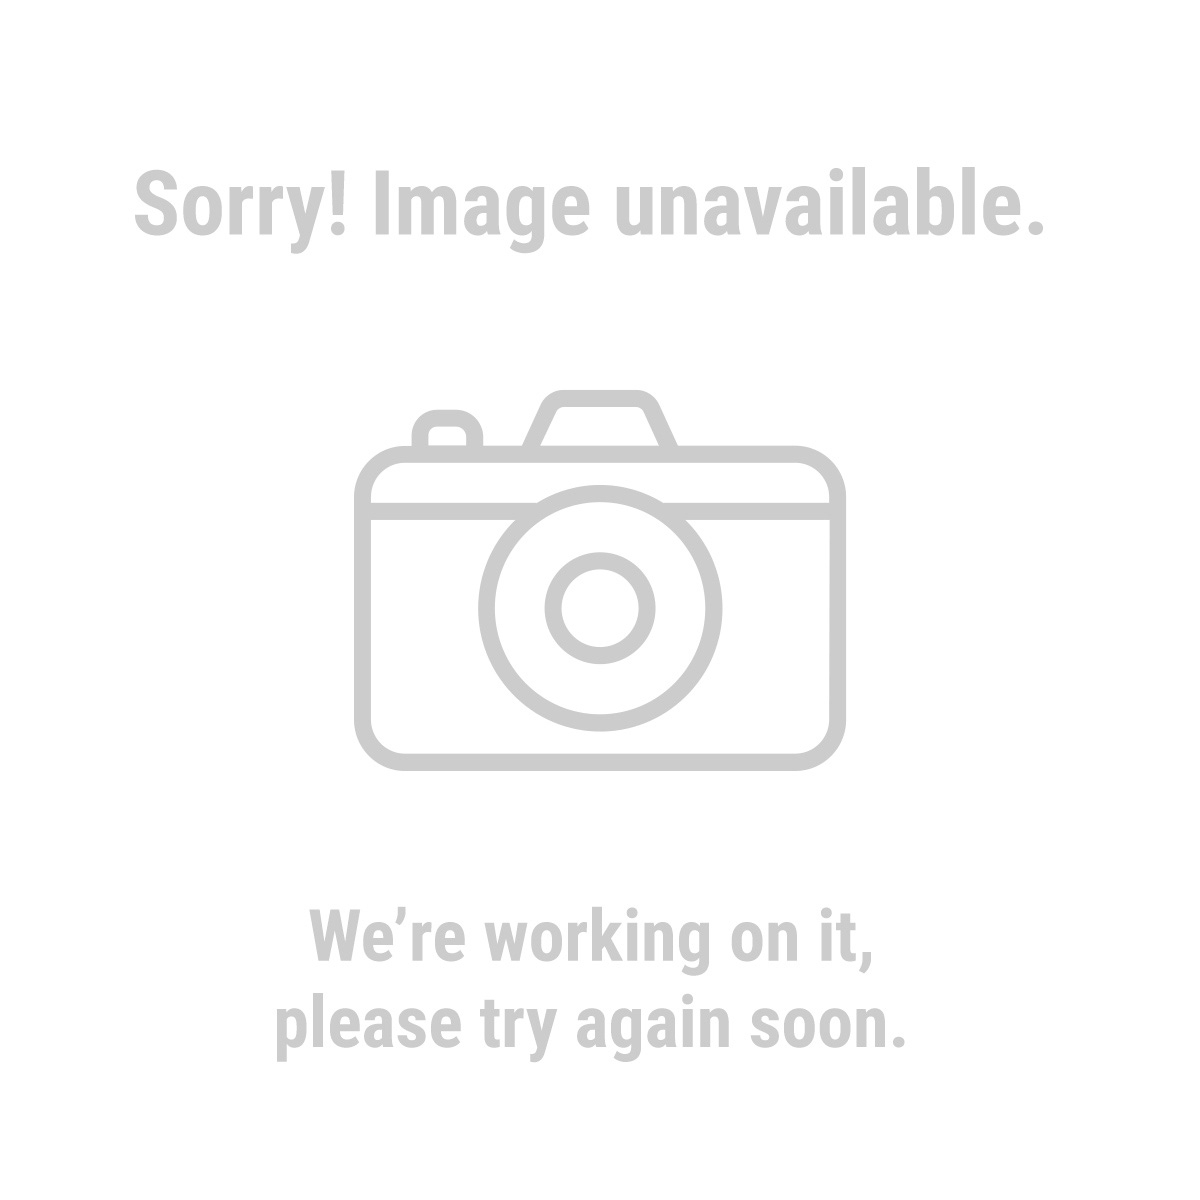 Warrior 60837 4 in. 40 Grit Masonry Cut-Off Wheel 10 Pc